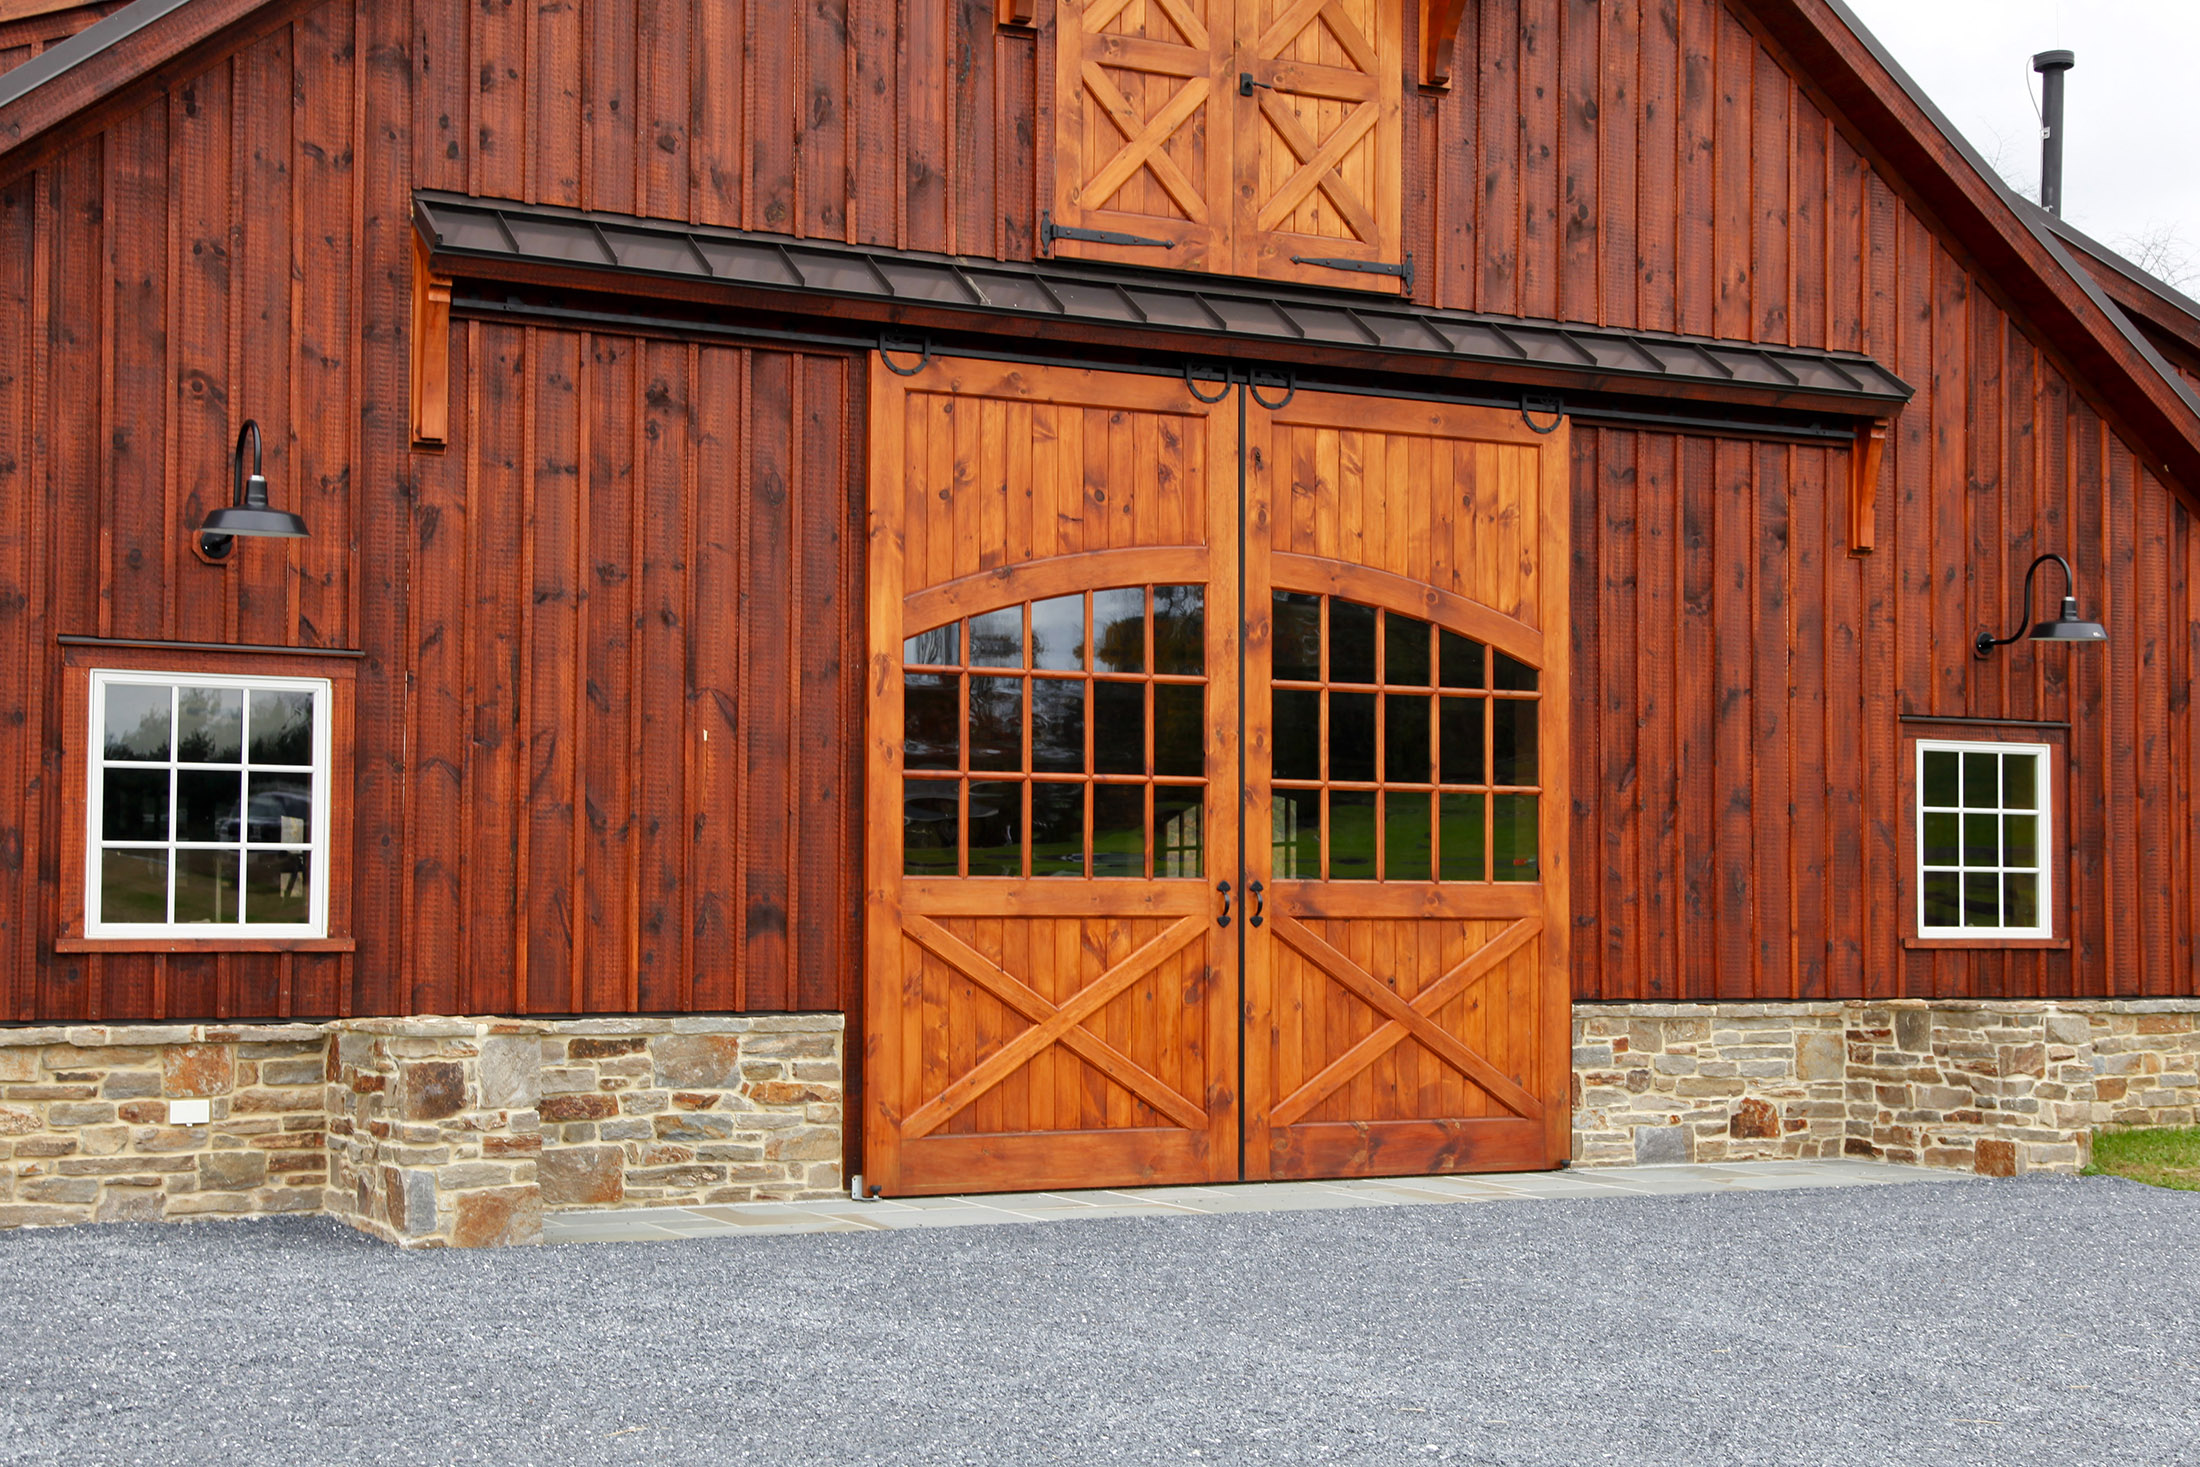 Sliding wooden barn doors with double window